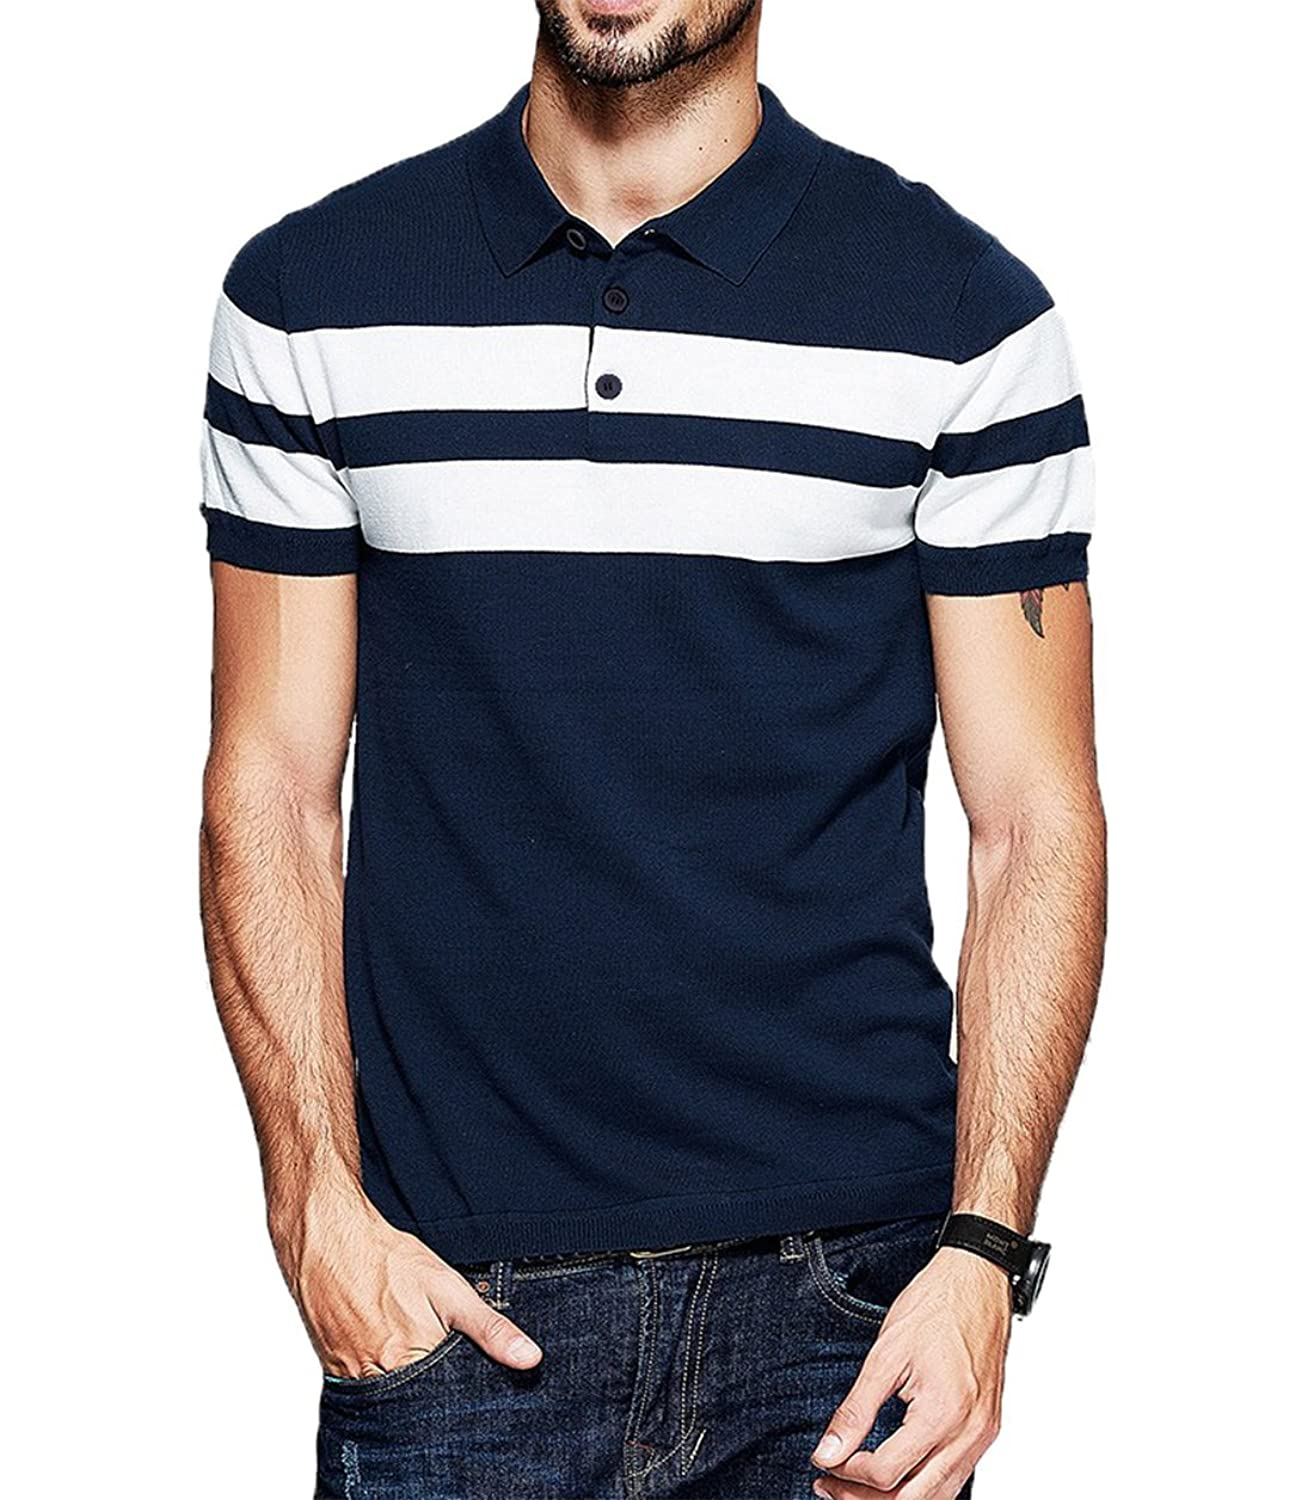 Branded T Shirts For Mens | Artee Shirt